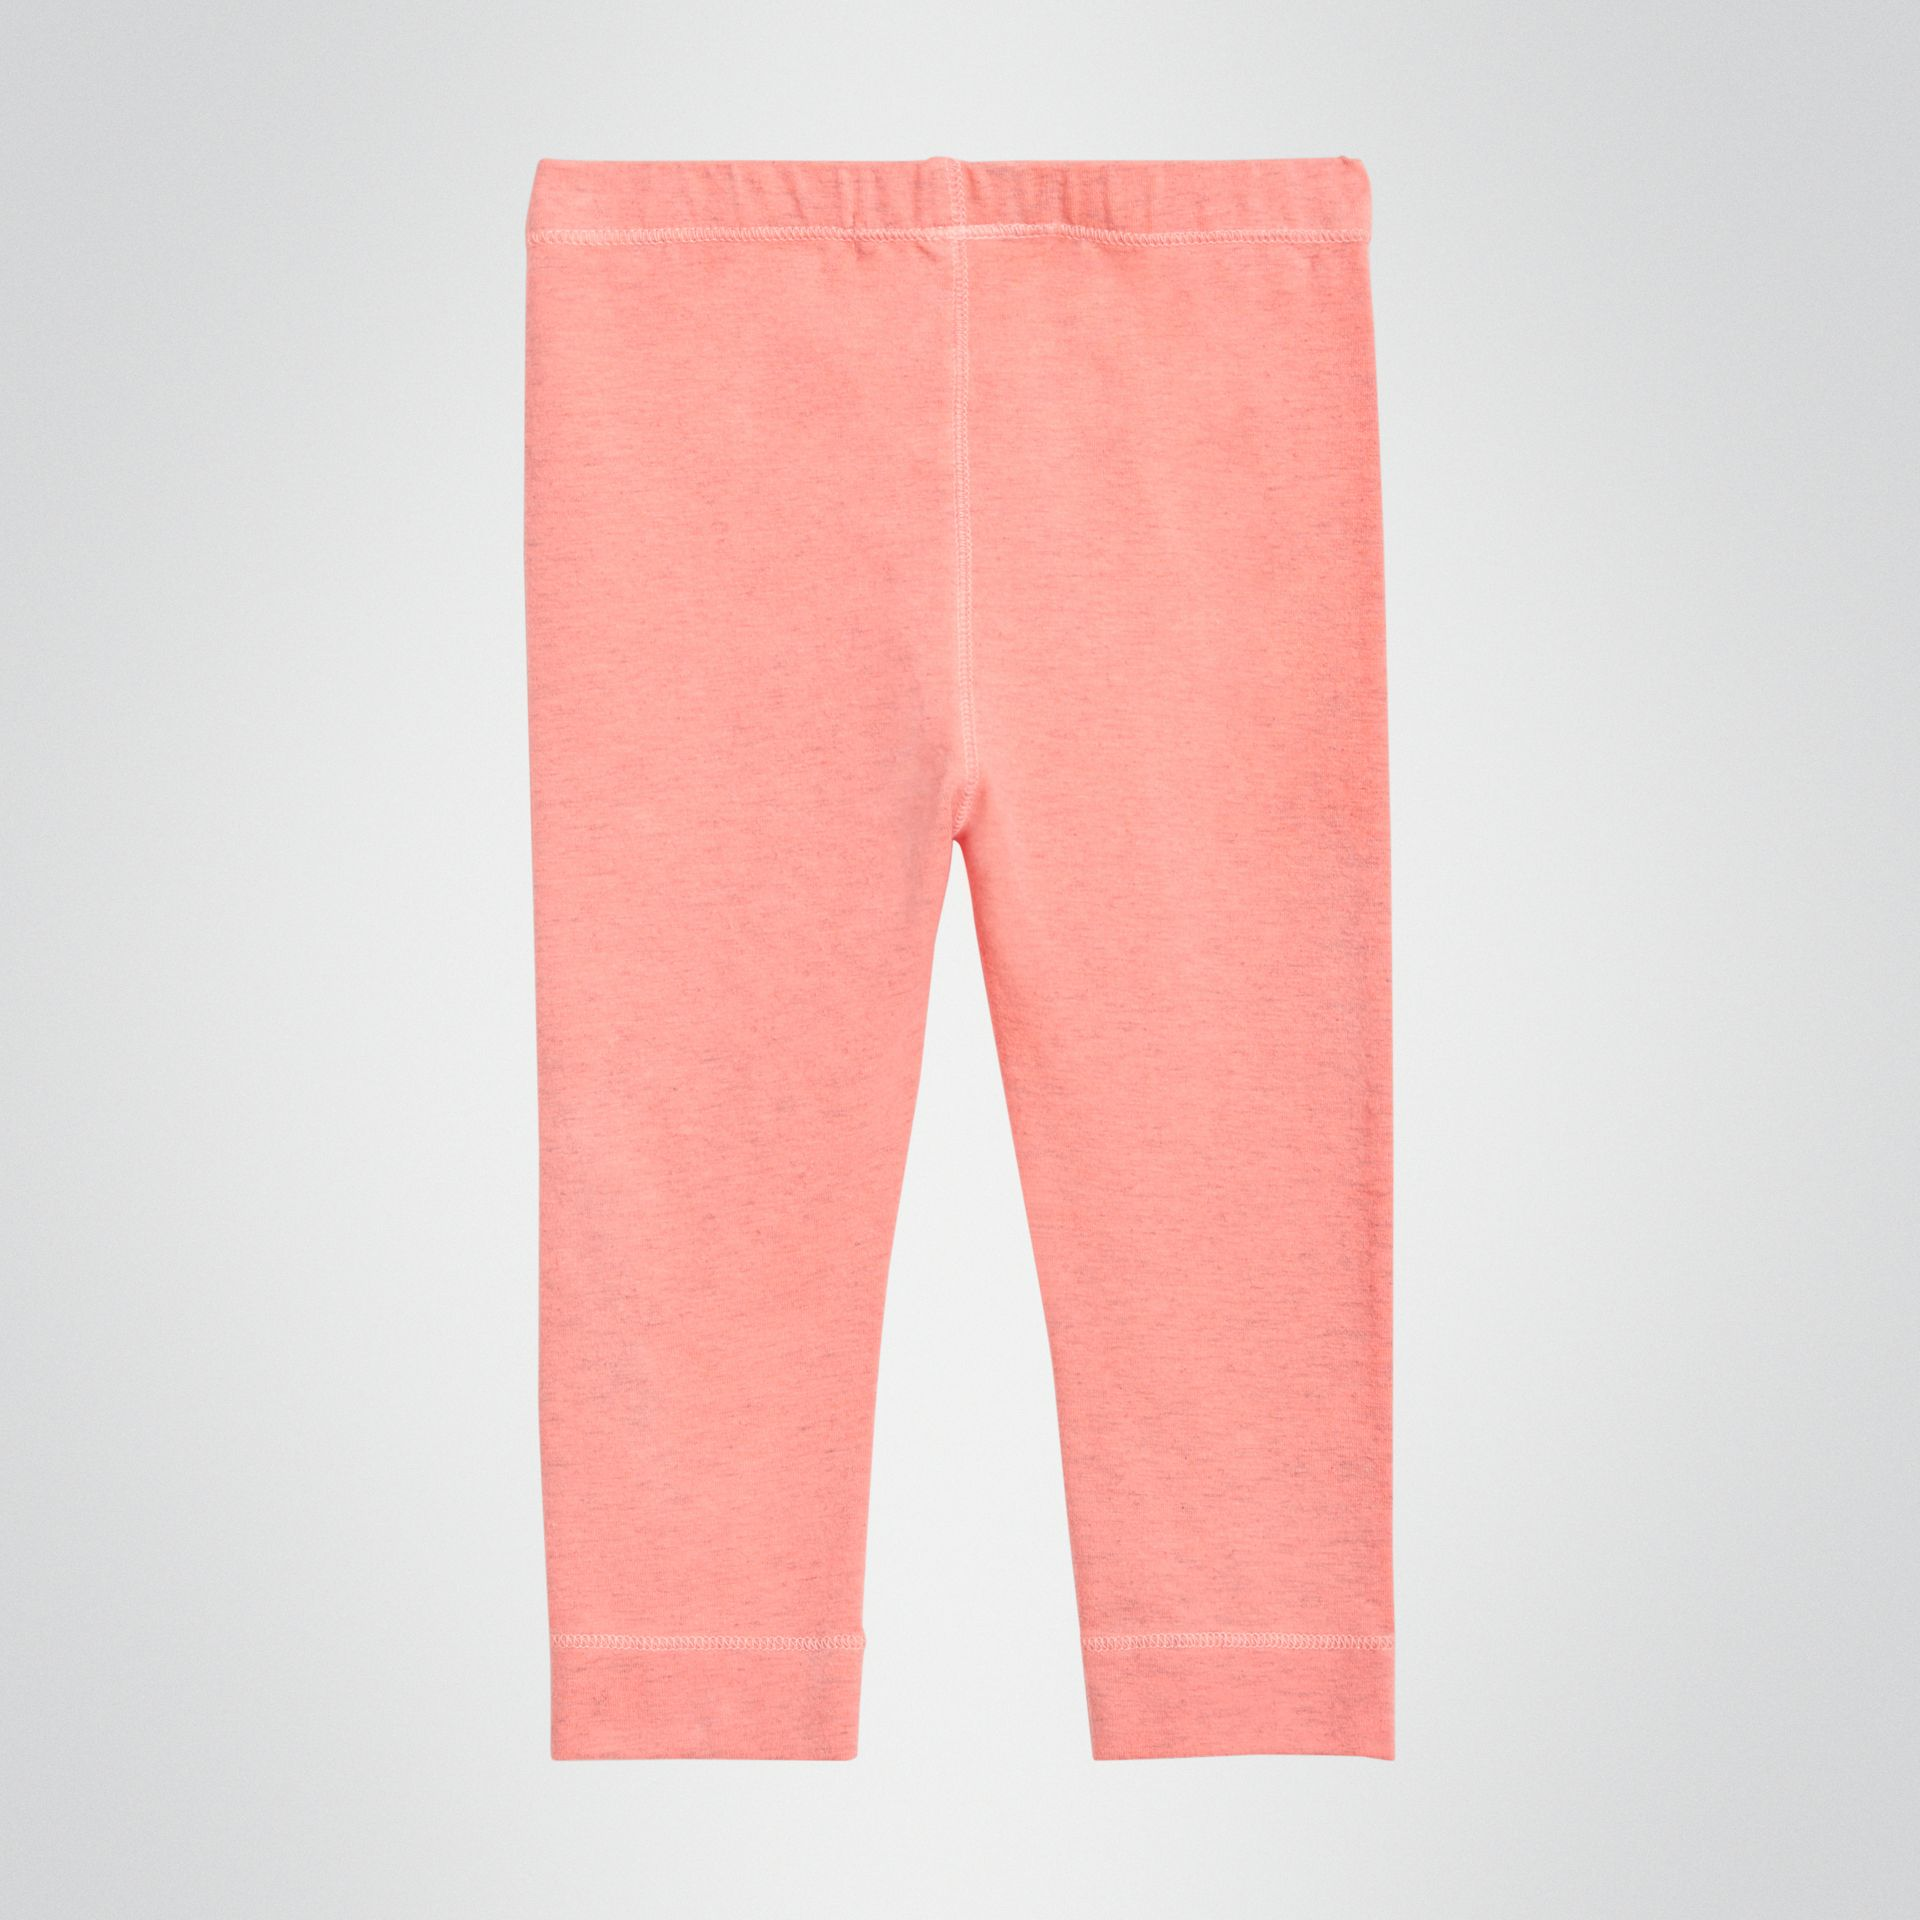 Logo Print Stretch Cotton Leggings in Pale Pink - Children | Burberry Singapore - gallery image 3